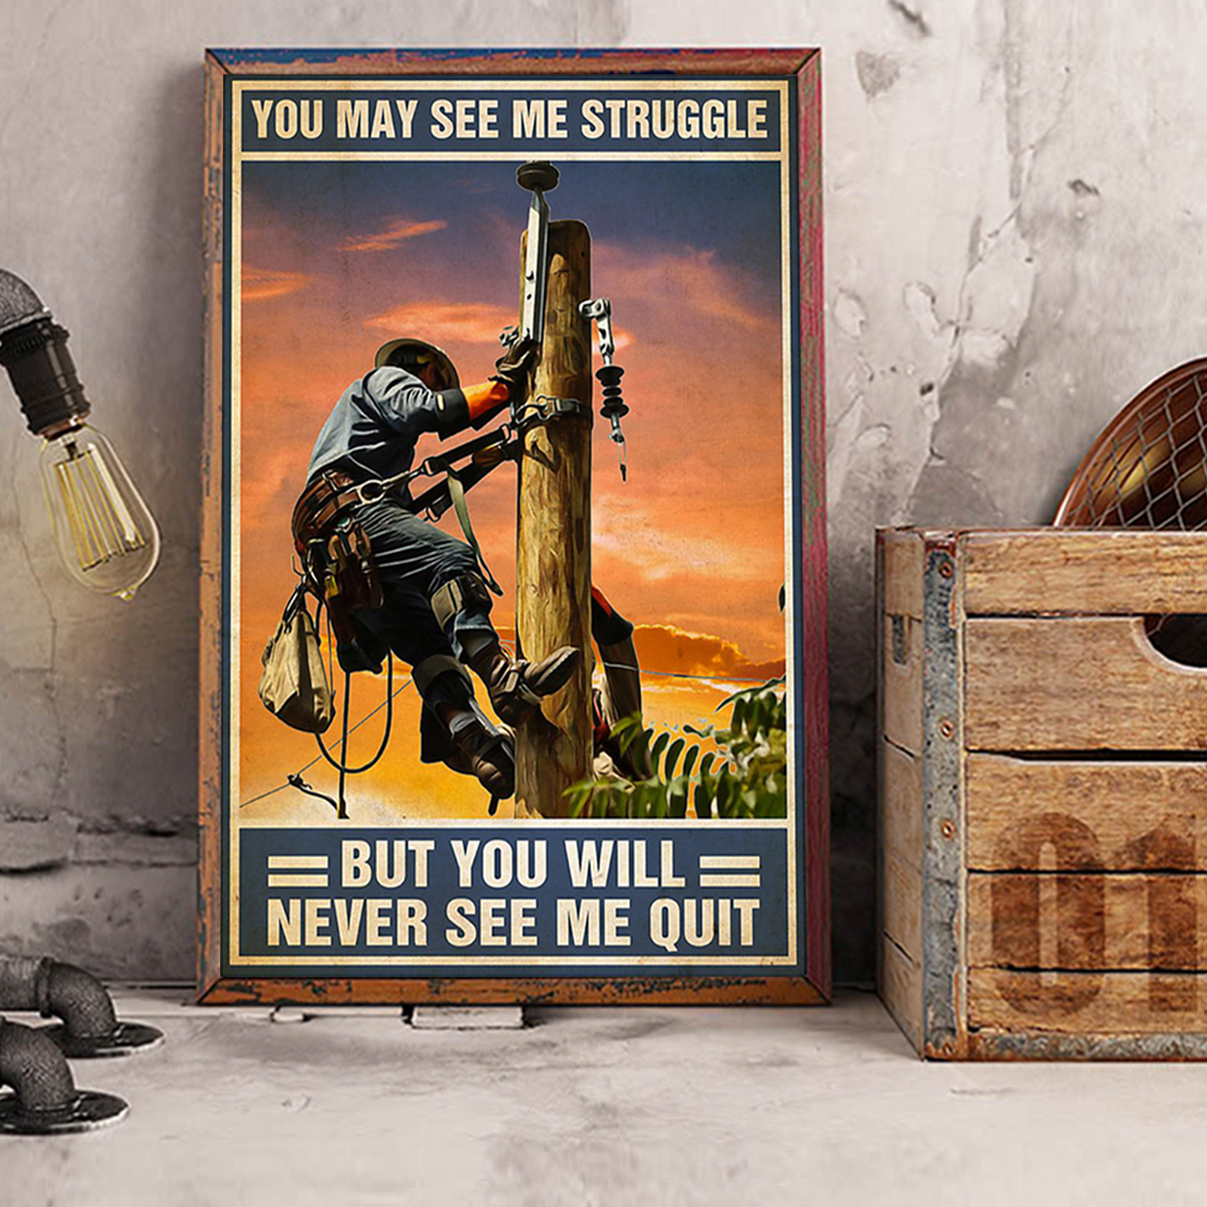 Lineman you may see me struggle poster A2